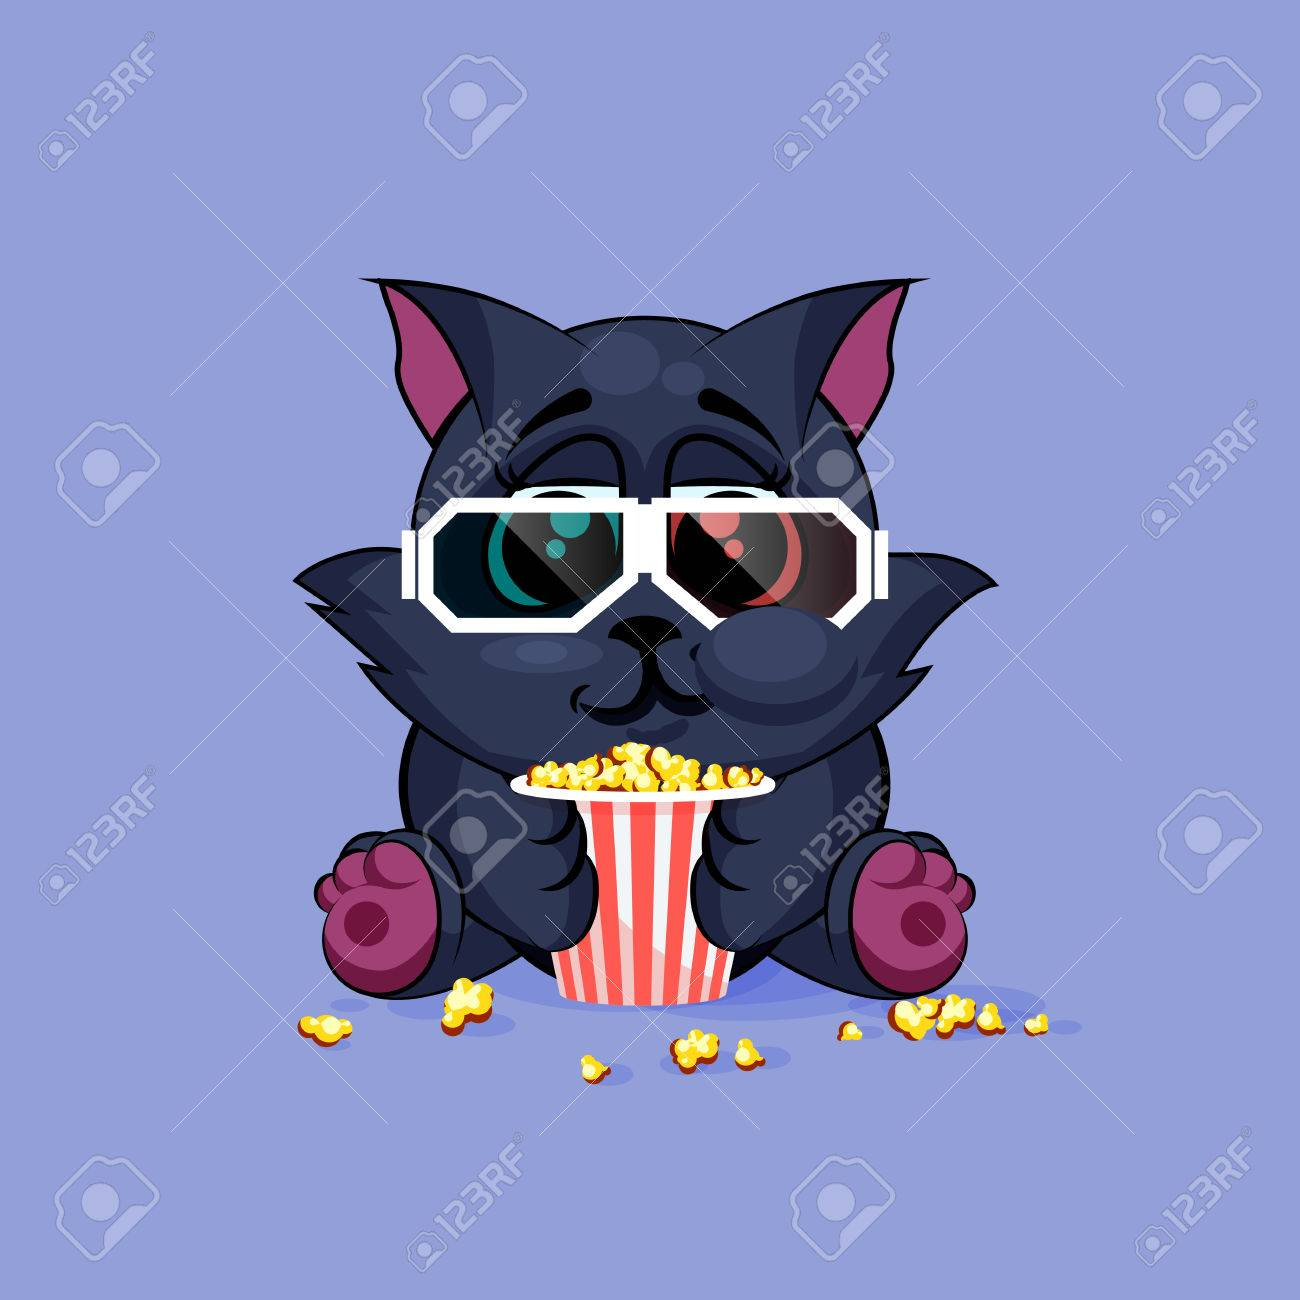 1805fdd879f0 Vector - Vector Stock Illustration Emoji character cartoon black cat  chewing popcorn, watching movie in 3D glasses sticker emoticon for site,  infographic, ...